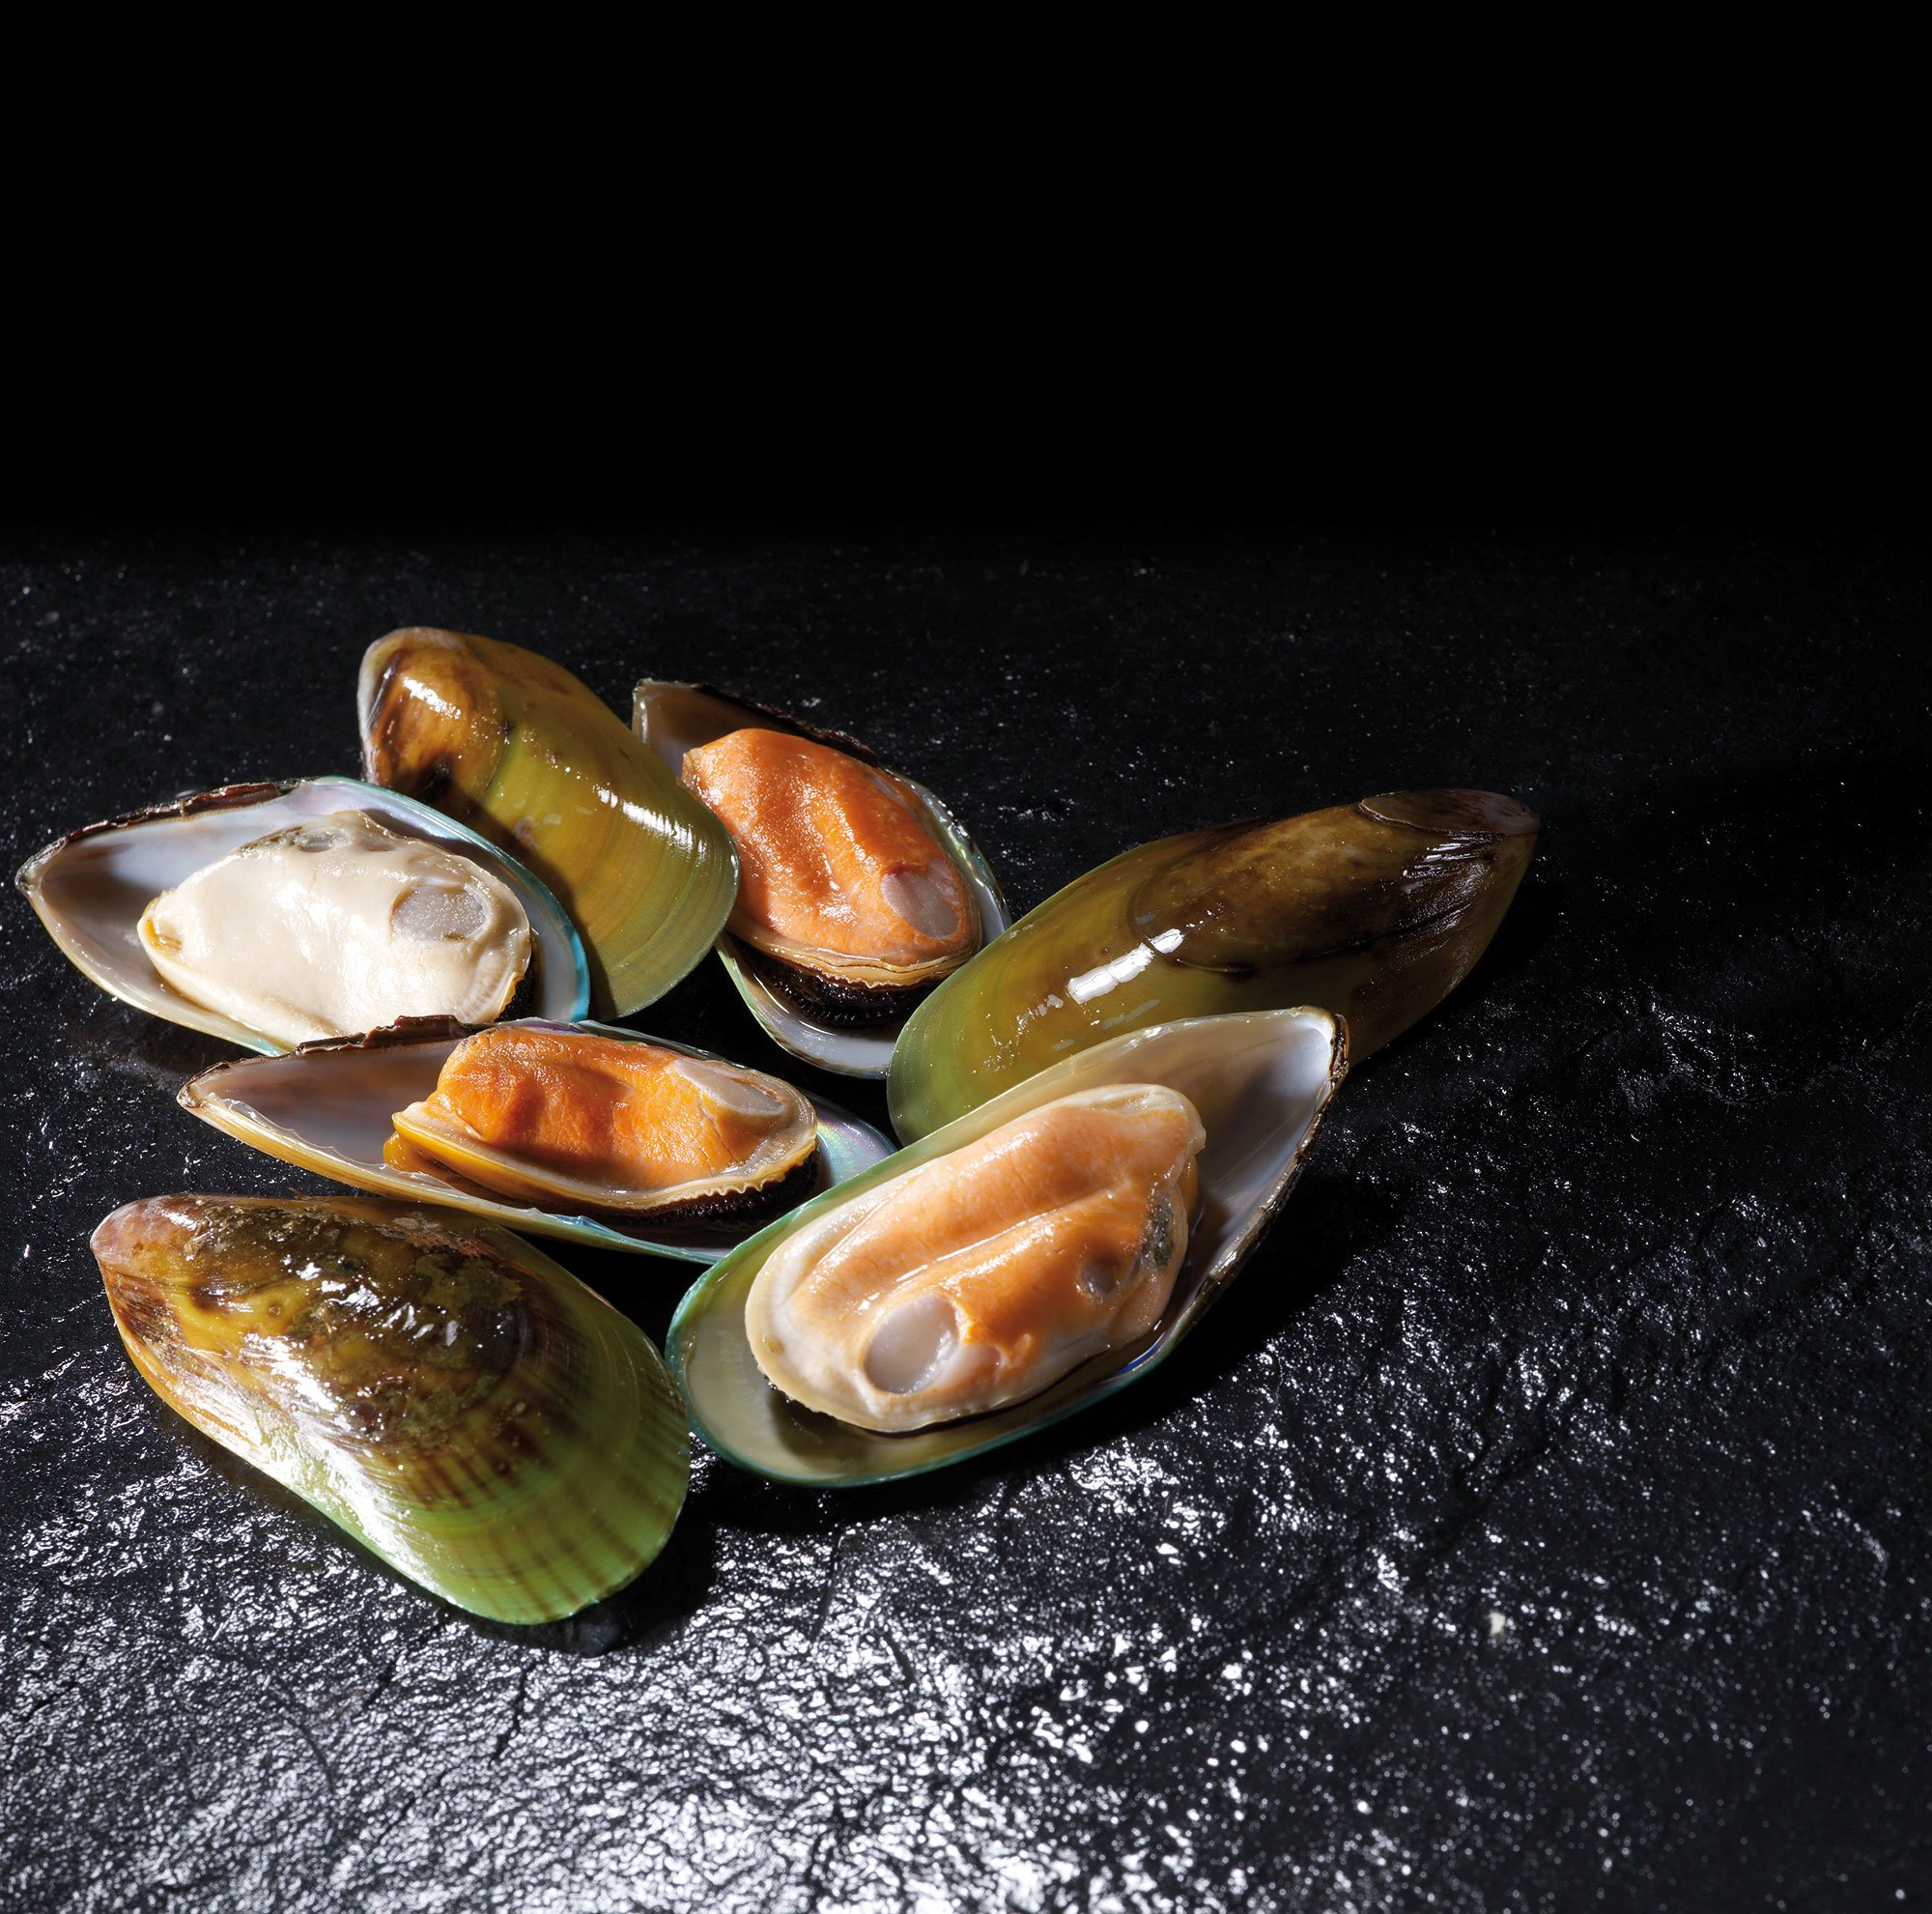 mussels-cockles-clams-welks-1